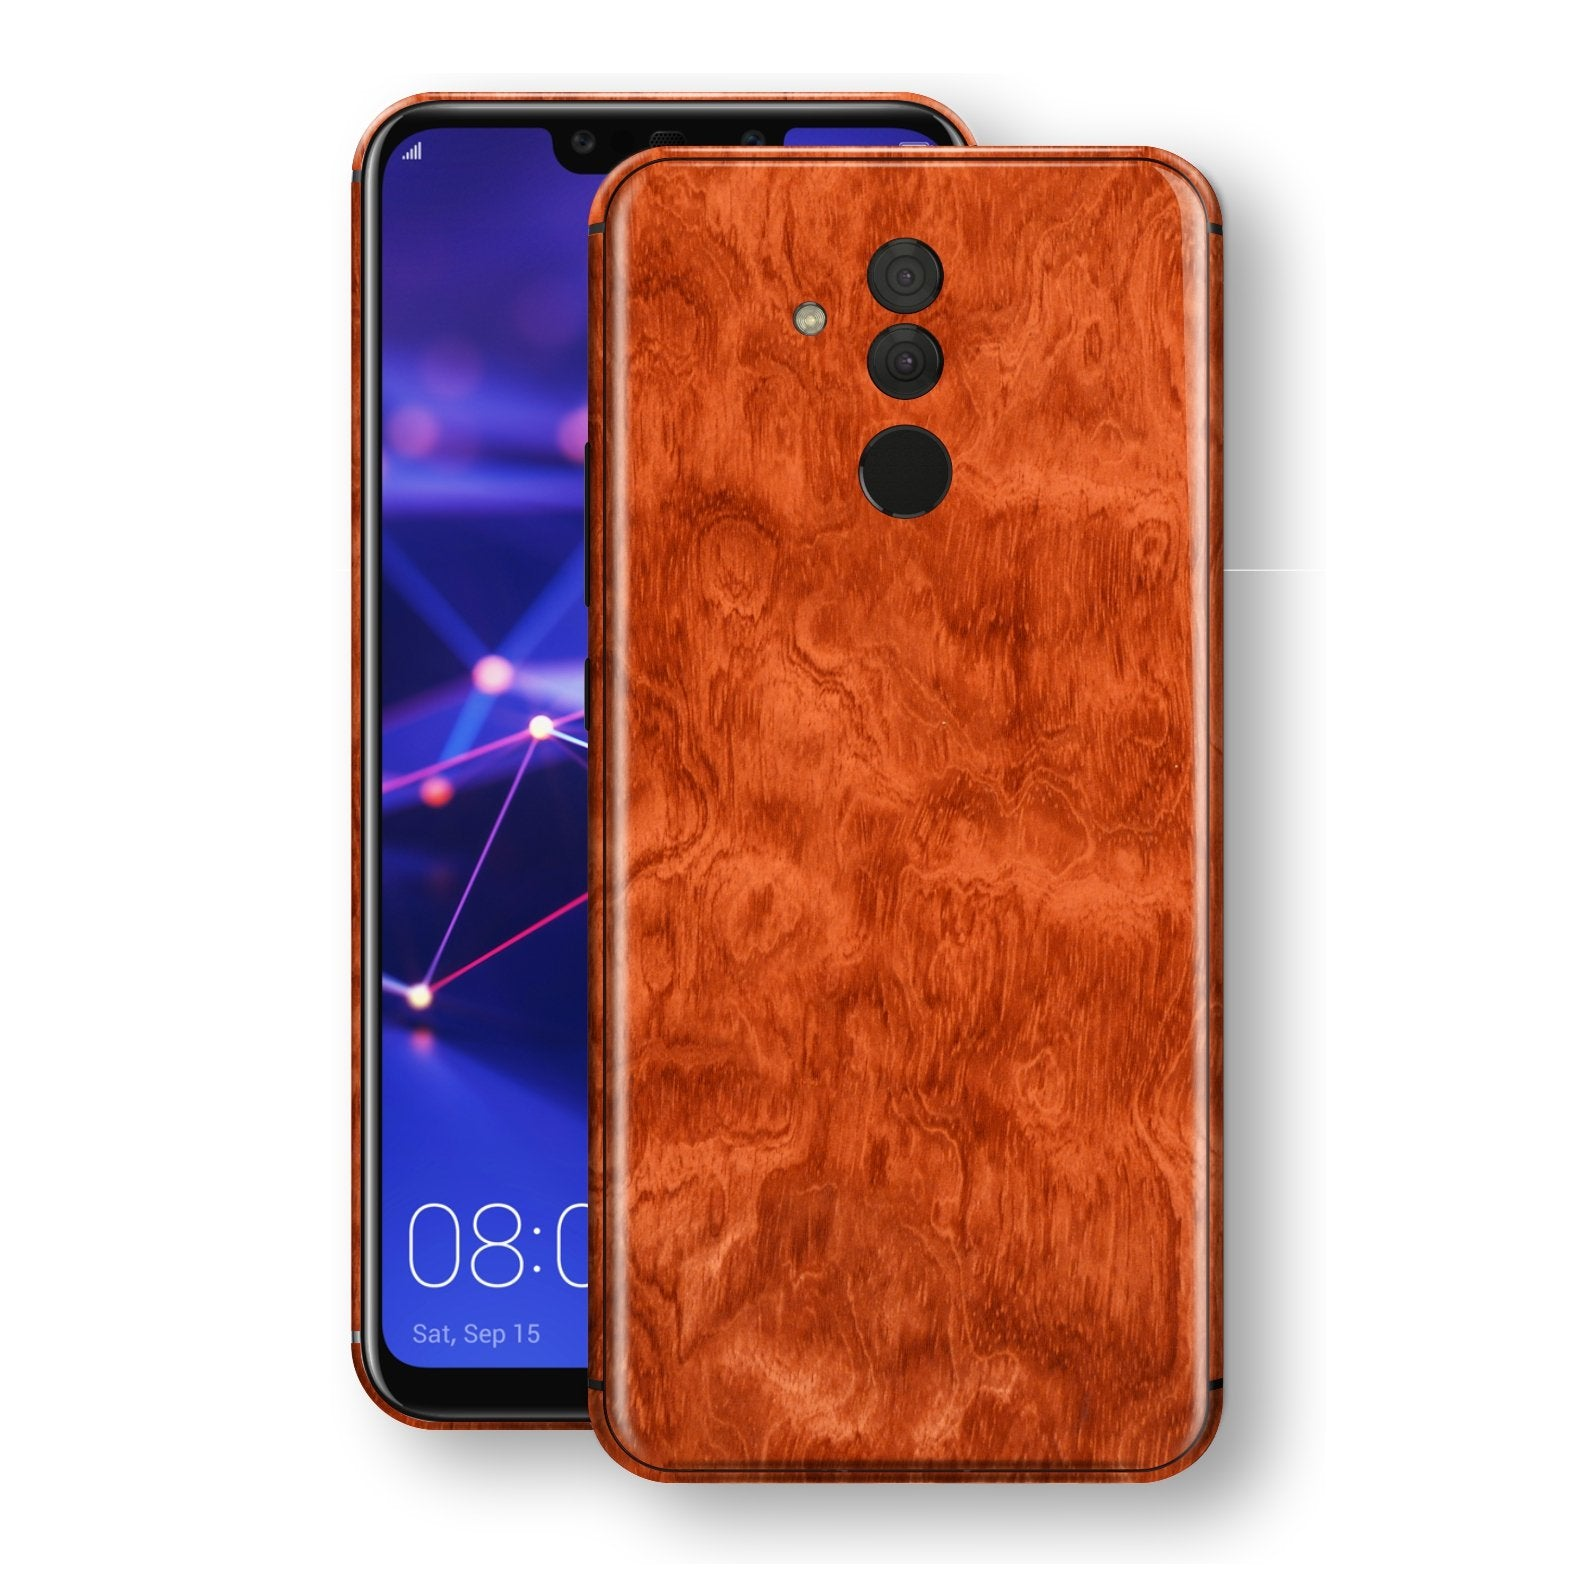 Huawei MATE 20 LITE Mahogany Wood Wooden Skin Wrap Decal Protector | EasySkinz